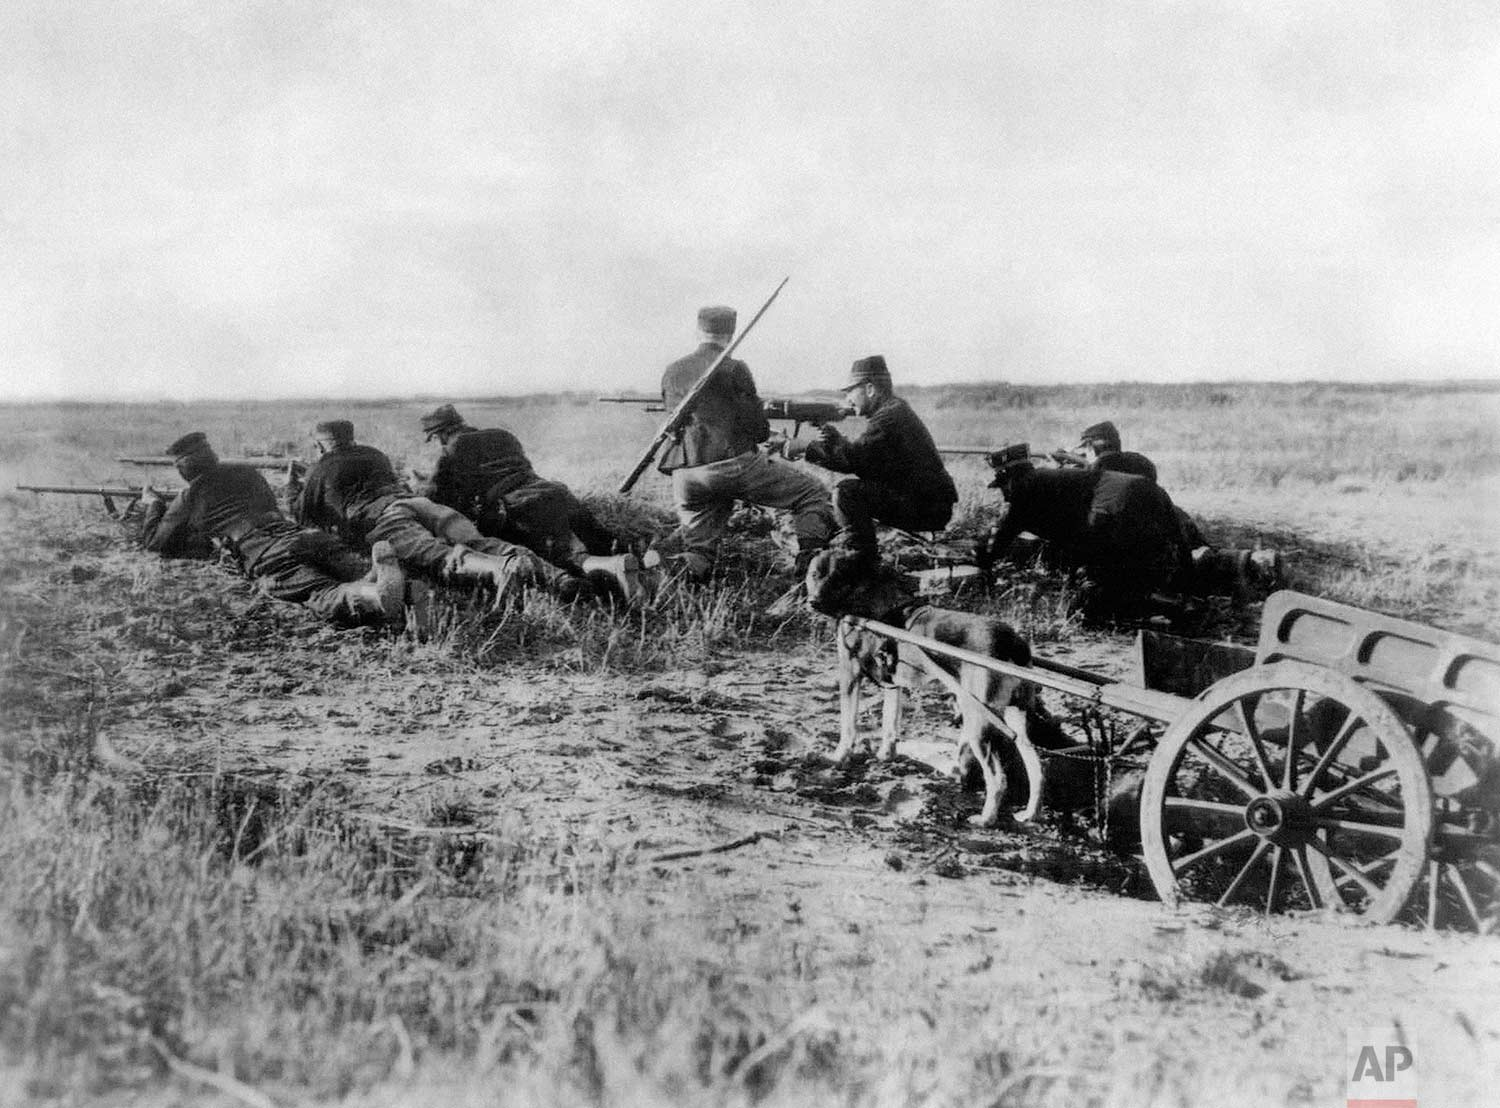 In this Aug. 1914 photo, a Belgian machine gun detachment sets up near Haelen, Belgium. The Belgians often used dogs to draw the ammunitions cart. The Battle of Haelen was also known as the Battle of the Silver Helmets. (AP Photo)